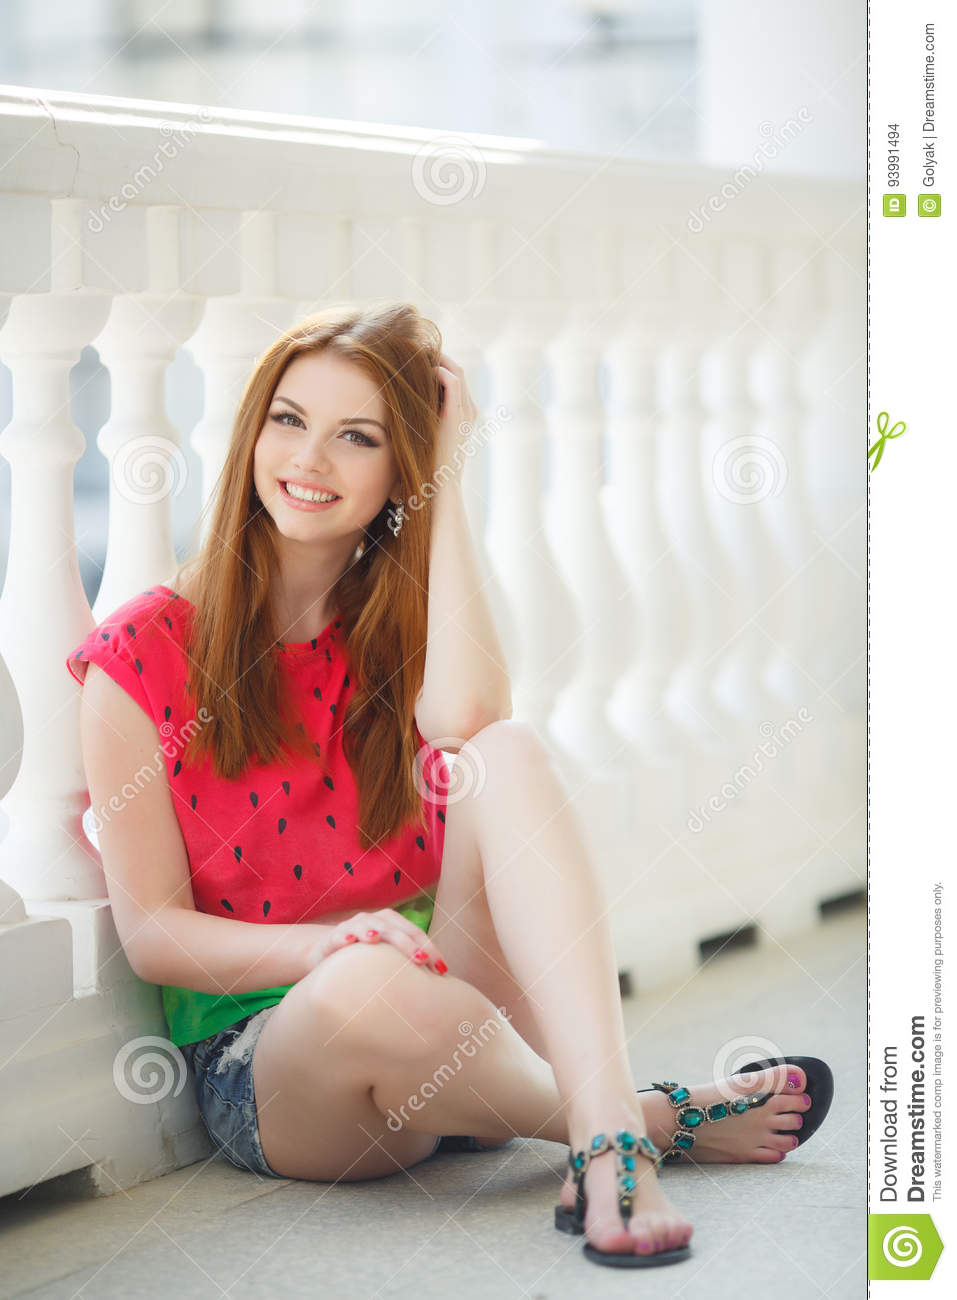 young girl with red hair stock photo image of forest portrait of beautiful young girl with gorgeous red hair